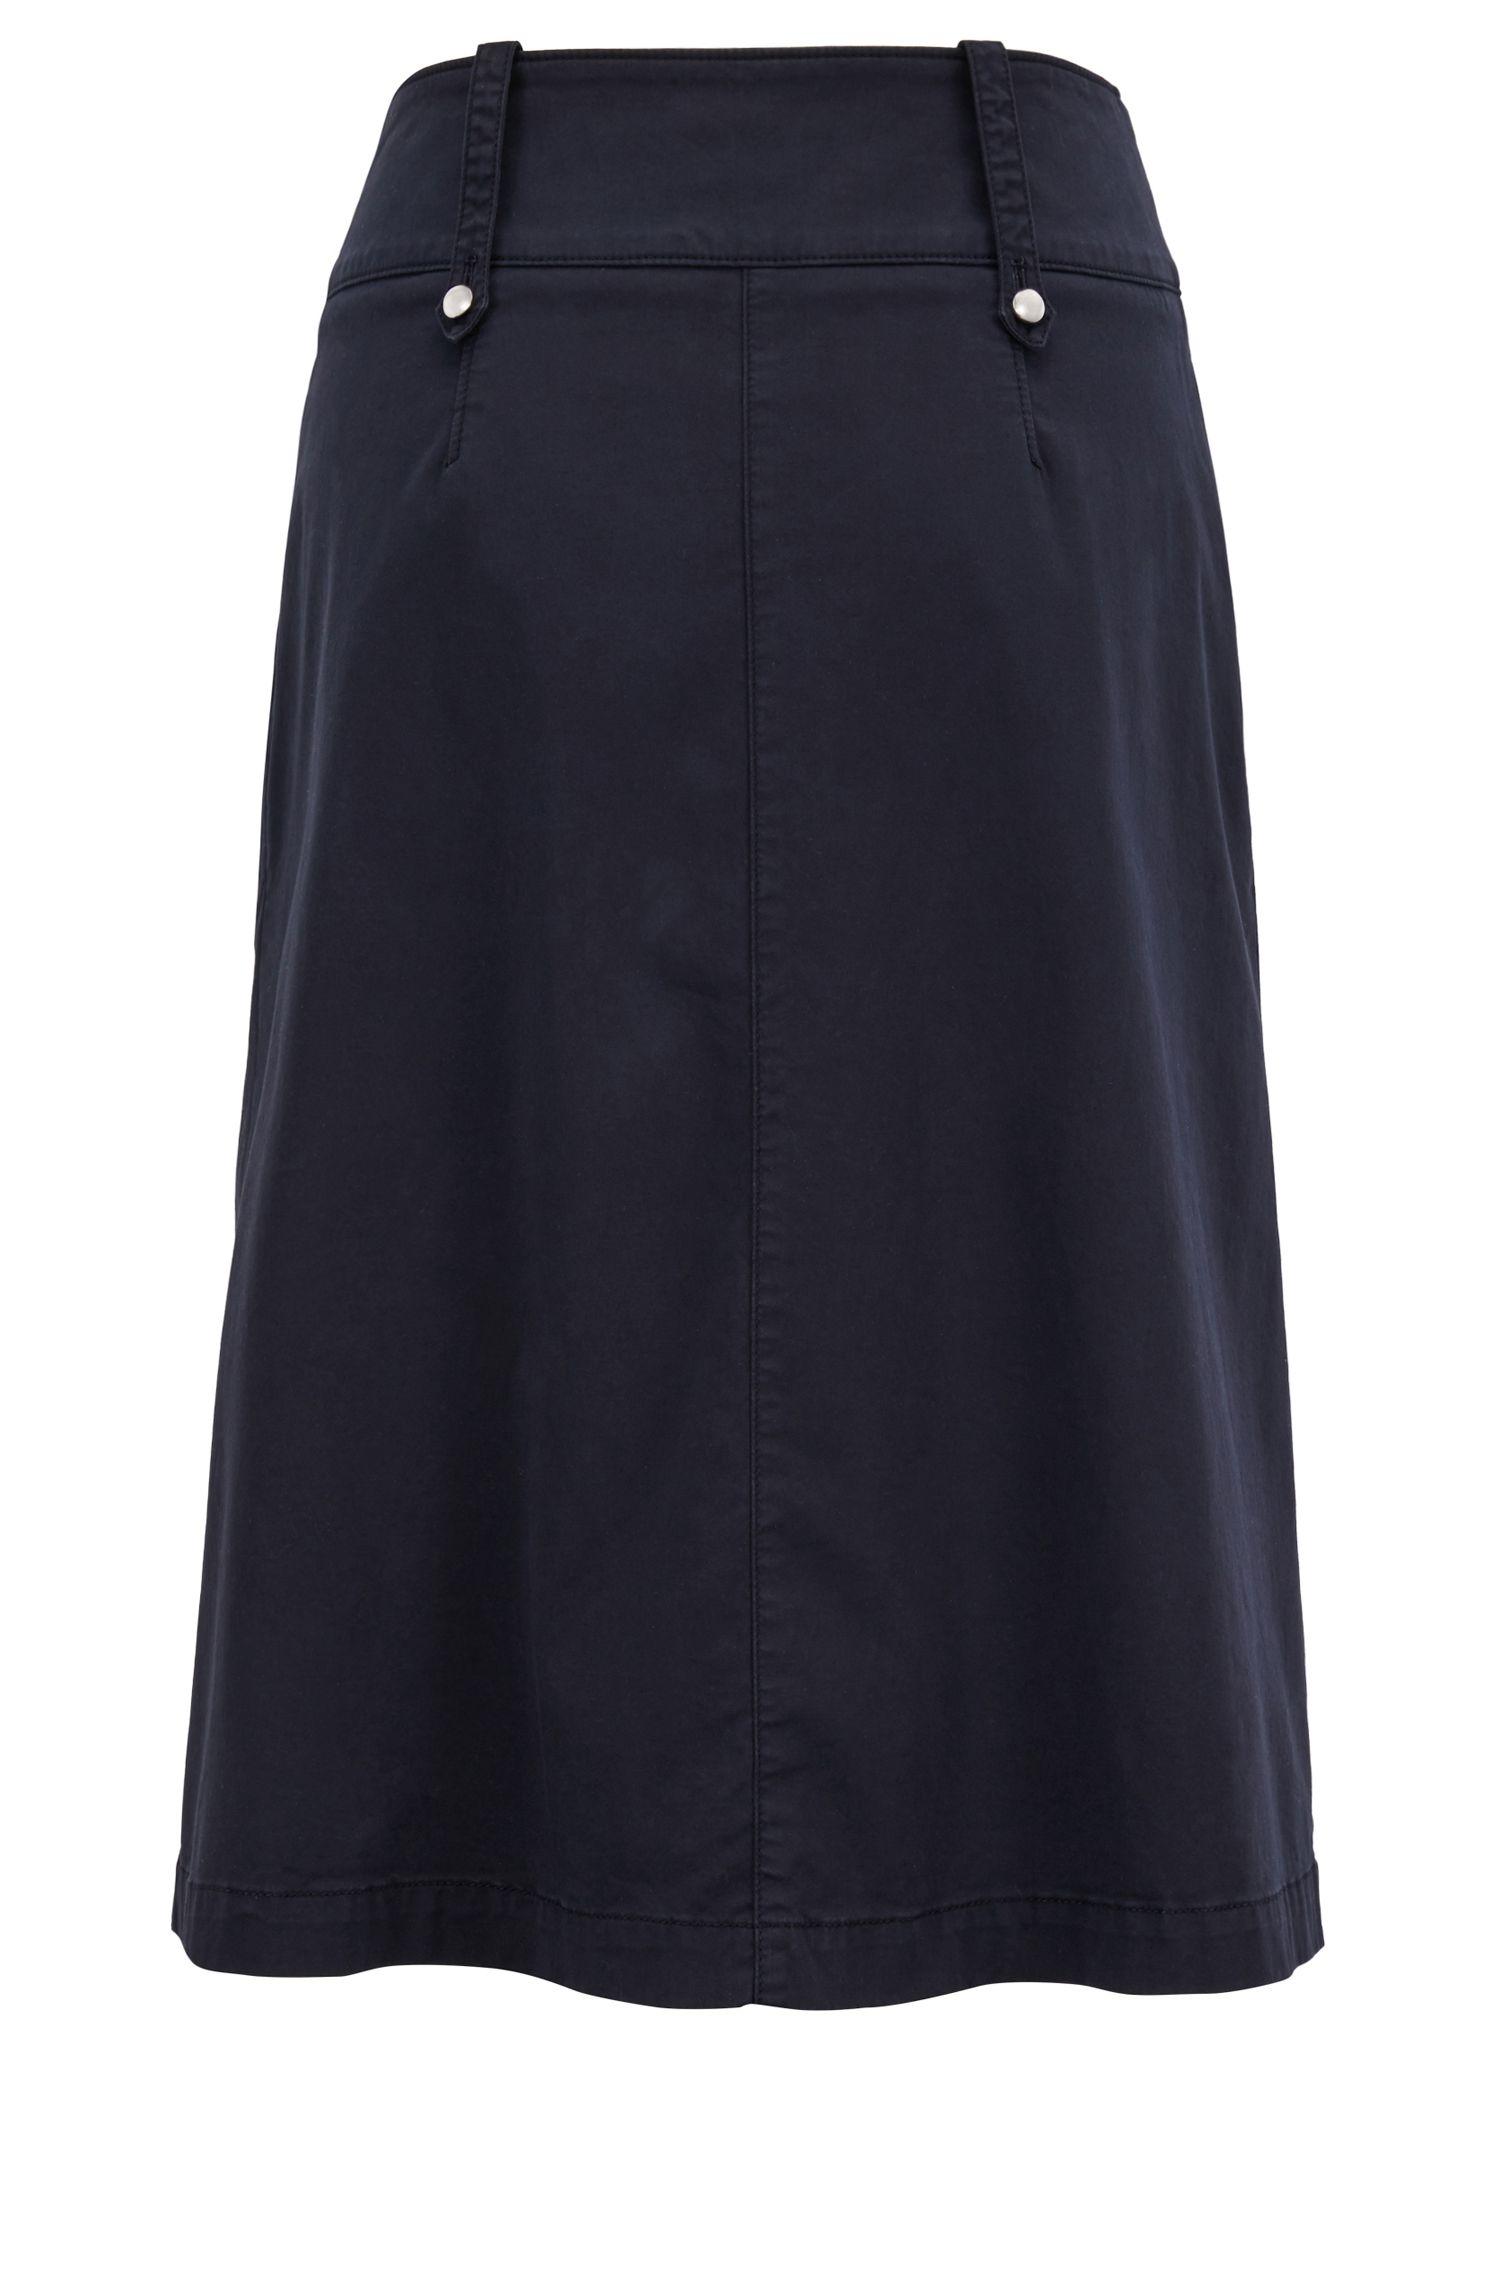 Utility-style midi skirt with decorative buttons